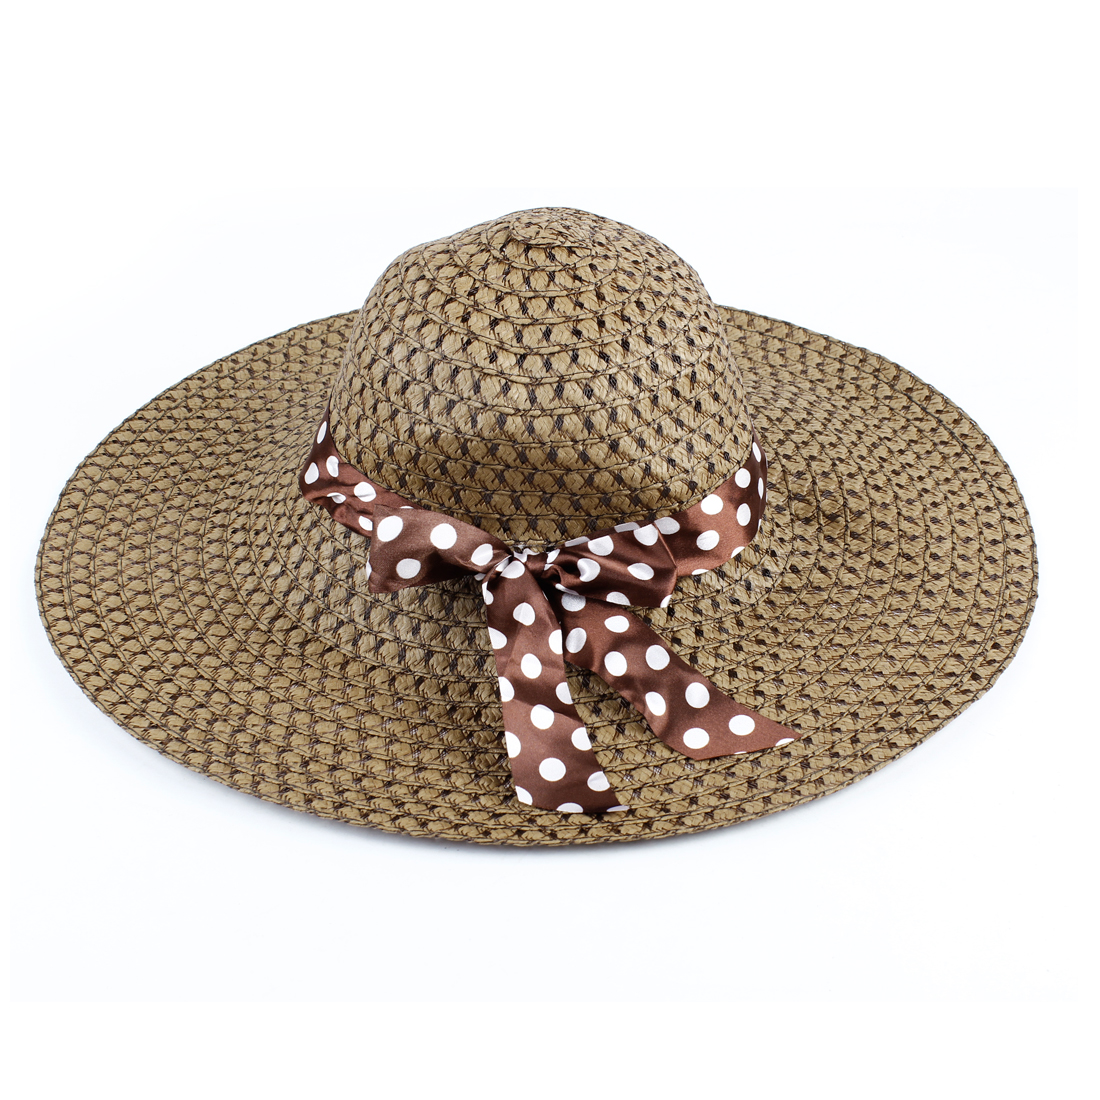 Brown Bow Tie Decor Hollow Out Straw Wide Braided Hat for Ladies